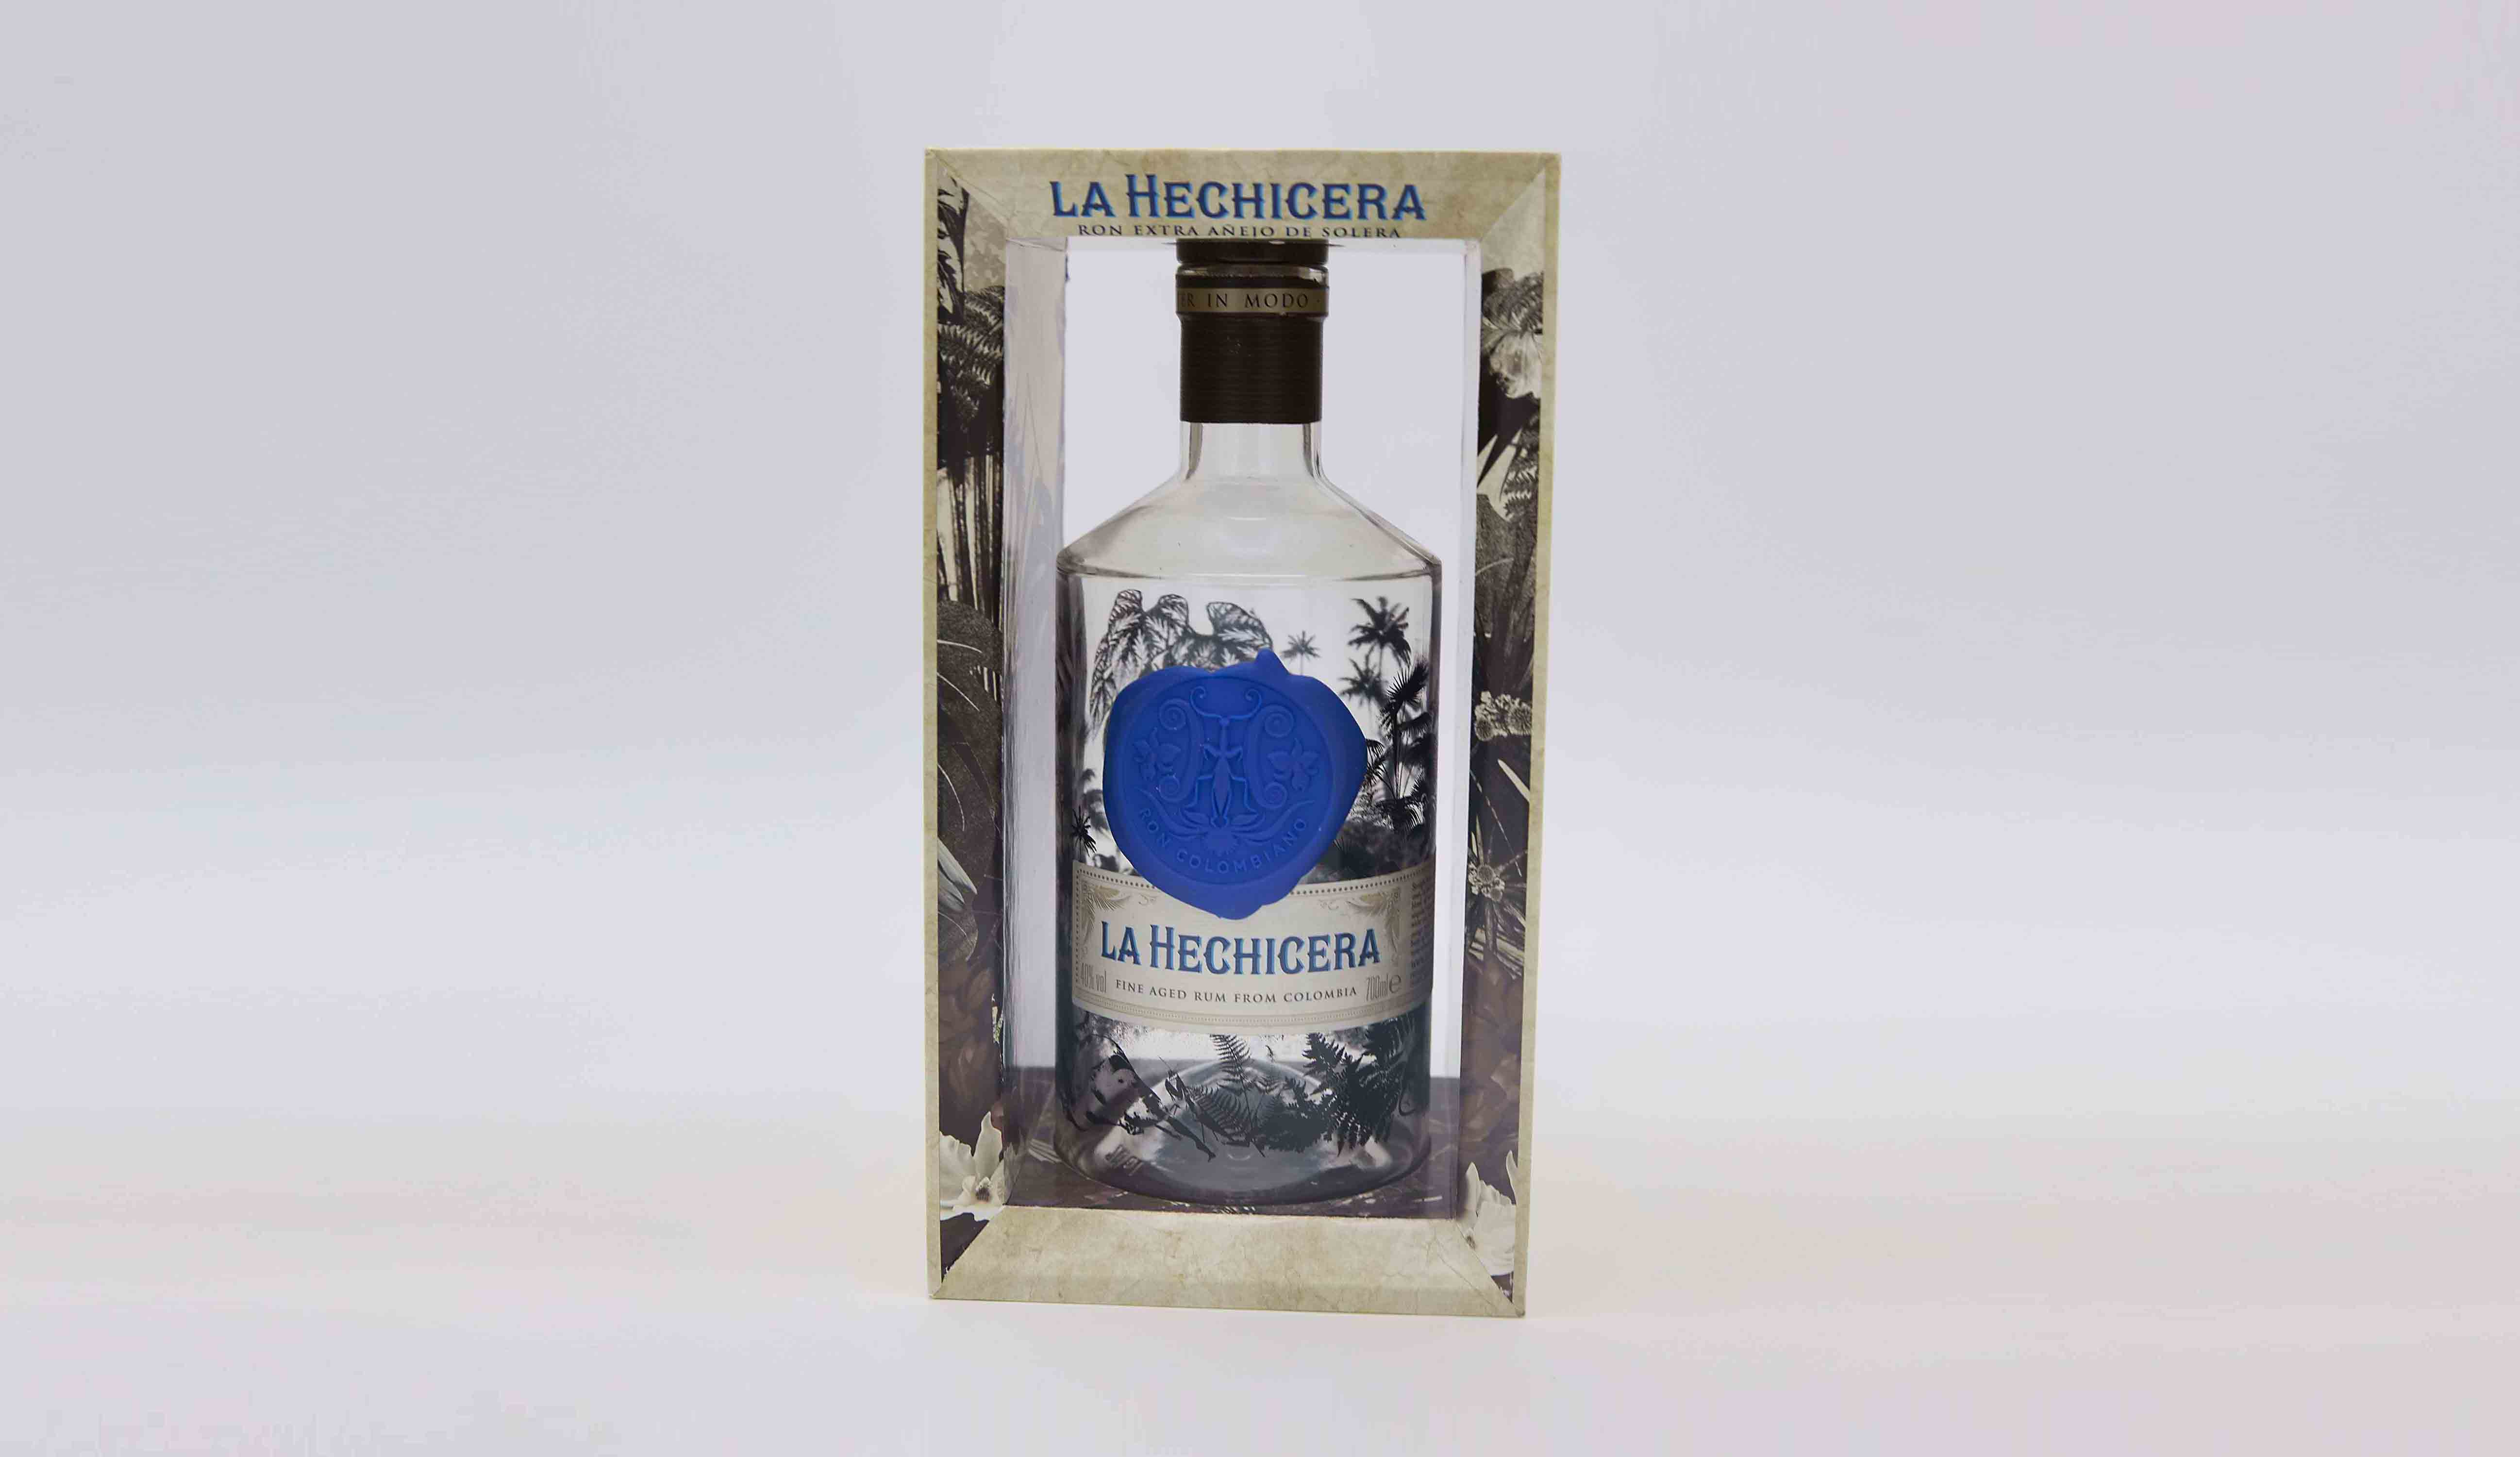 Wine & Spirits Packaging - La Hechicera Tequila Box